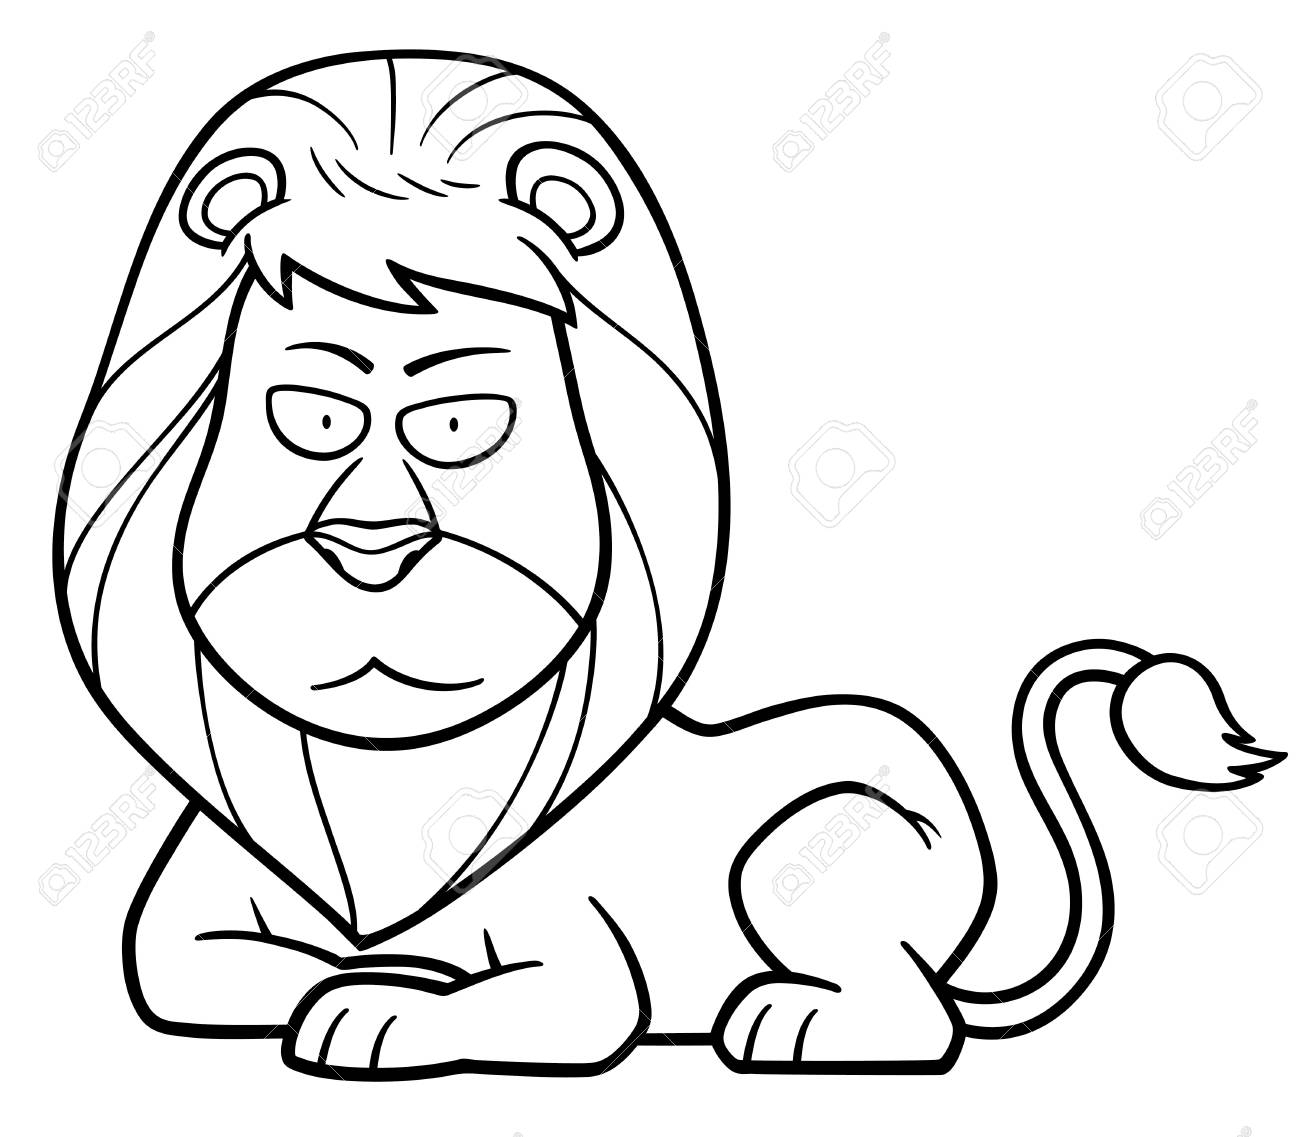 Vector Illustration Of Lion Cartoon - Coloring Book Royalty Free ...